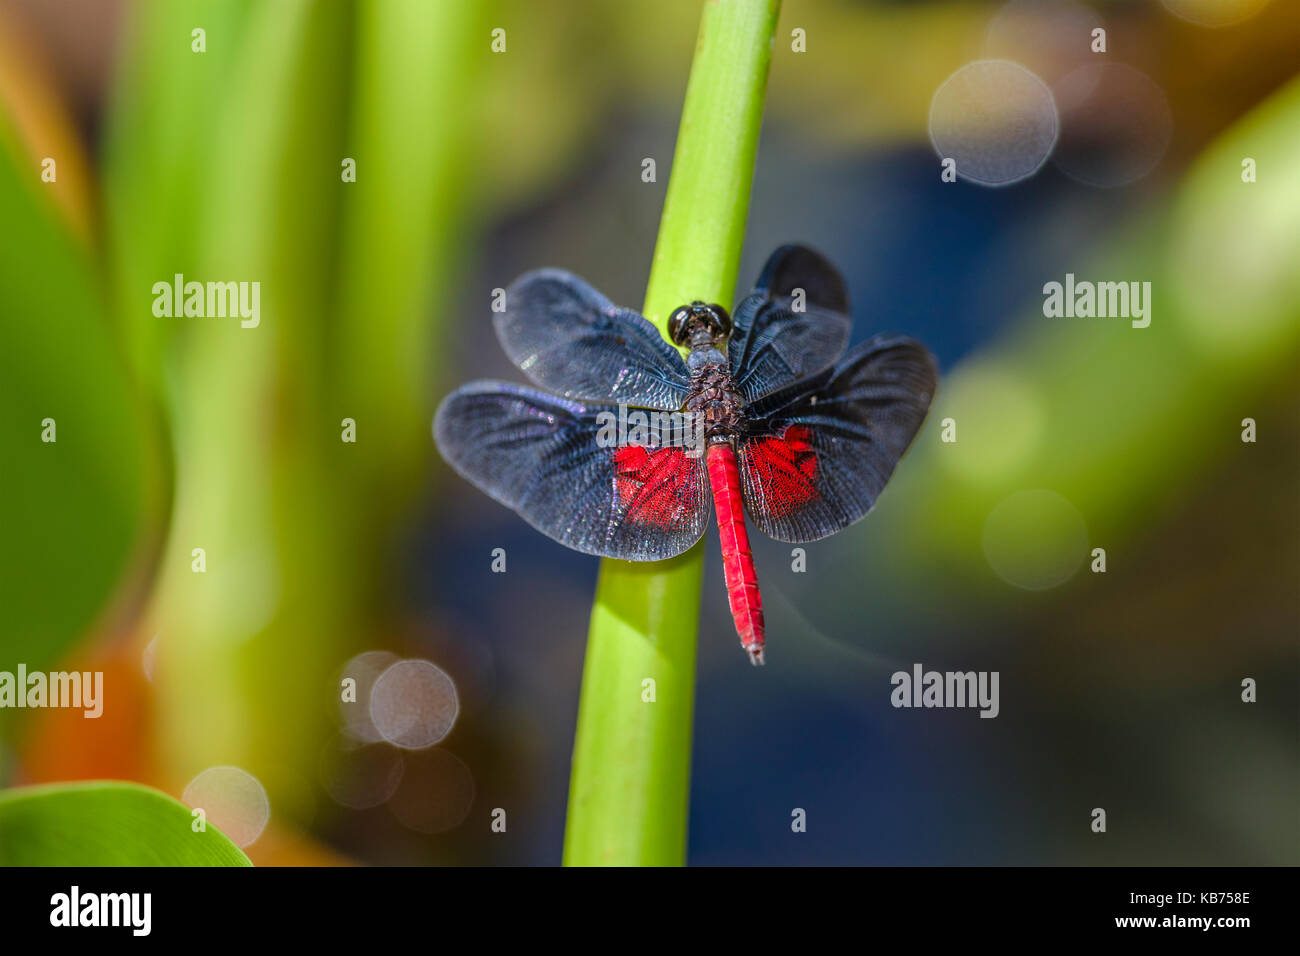 Dragonfly (Diastatops intensa) perched on stem, Brazil, Mato Grosso, Pantanal - Stock Image